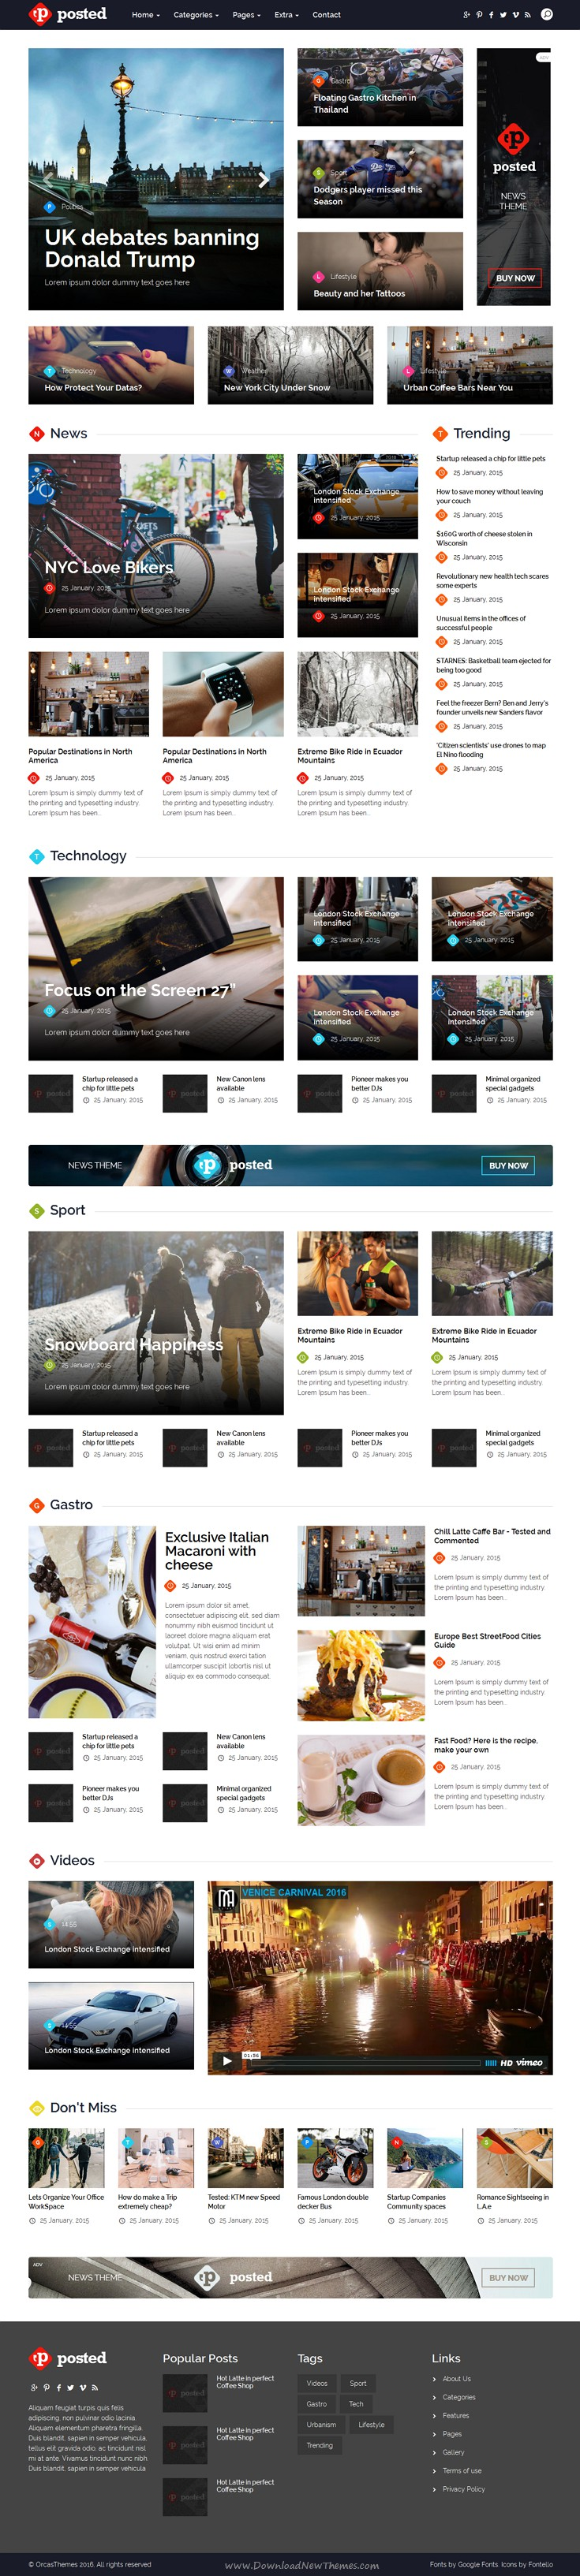 Posted News/Magazine Bootstrap HTML5 Template | Magazine website ...